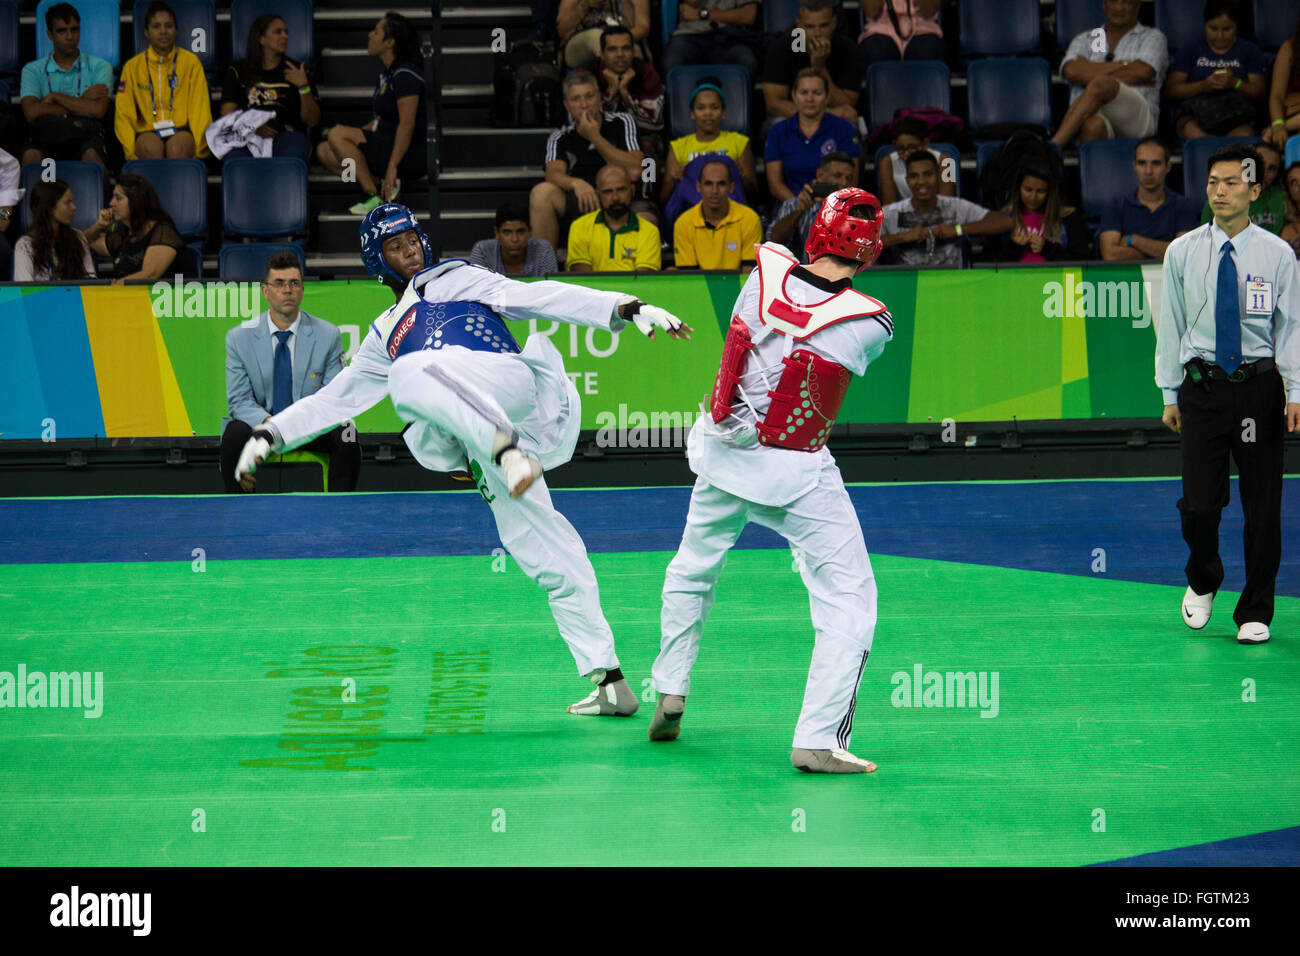 Rio De Janeiro Brazil 21 February 2016 Olympic Park Holds A Test Event For Games The International Taekwondo Tournament Meets